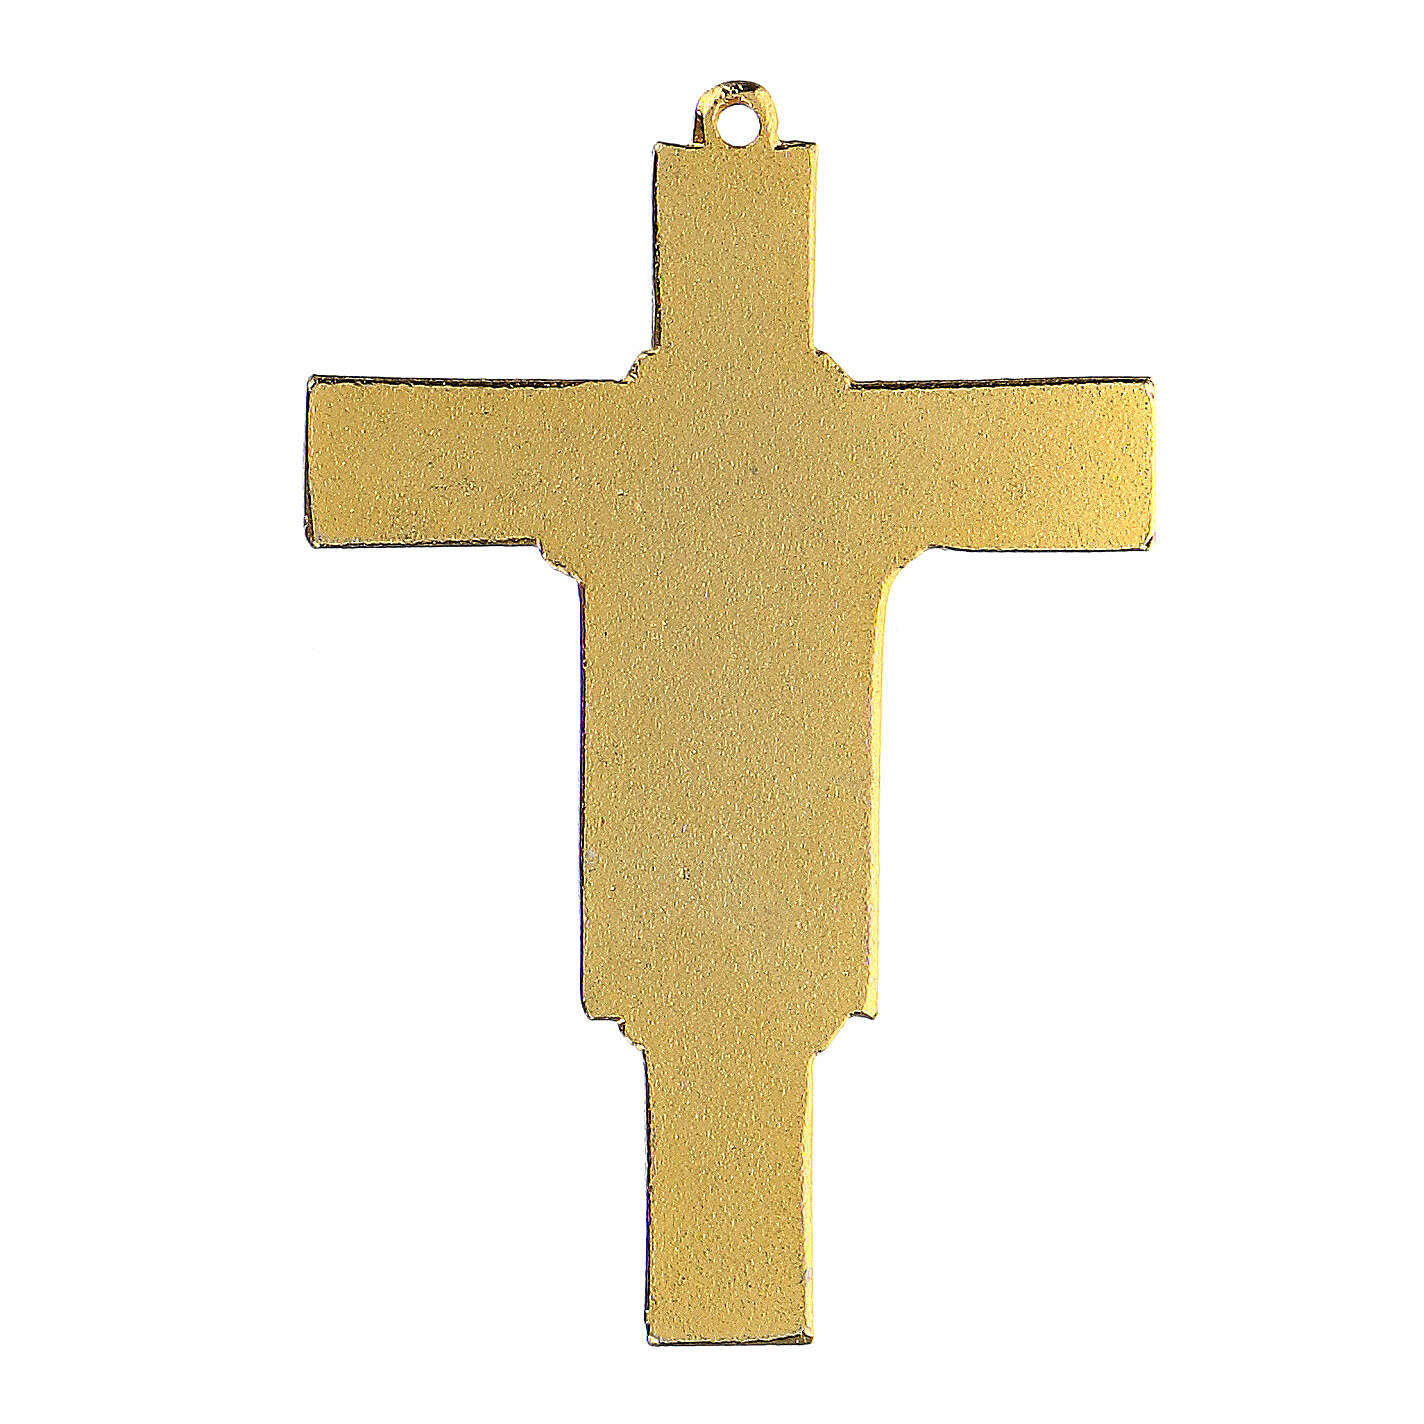 Enamelled Franciscan crucifix pendant 4